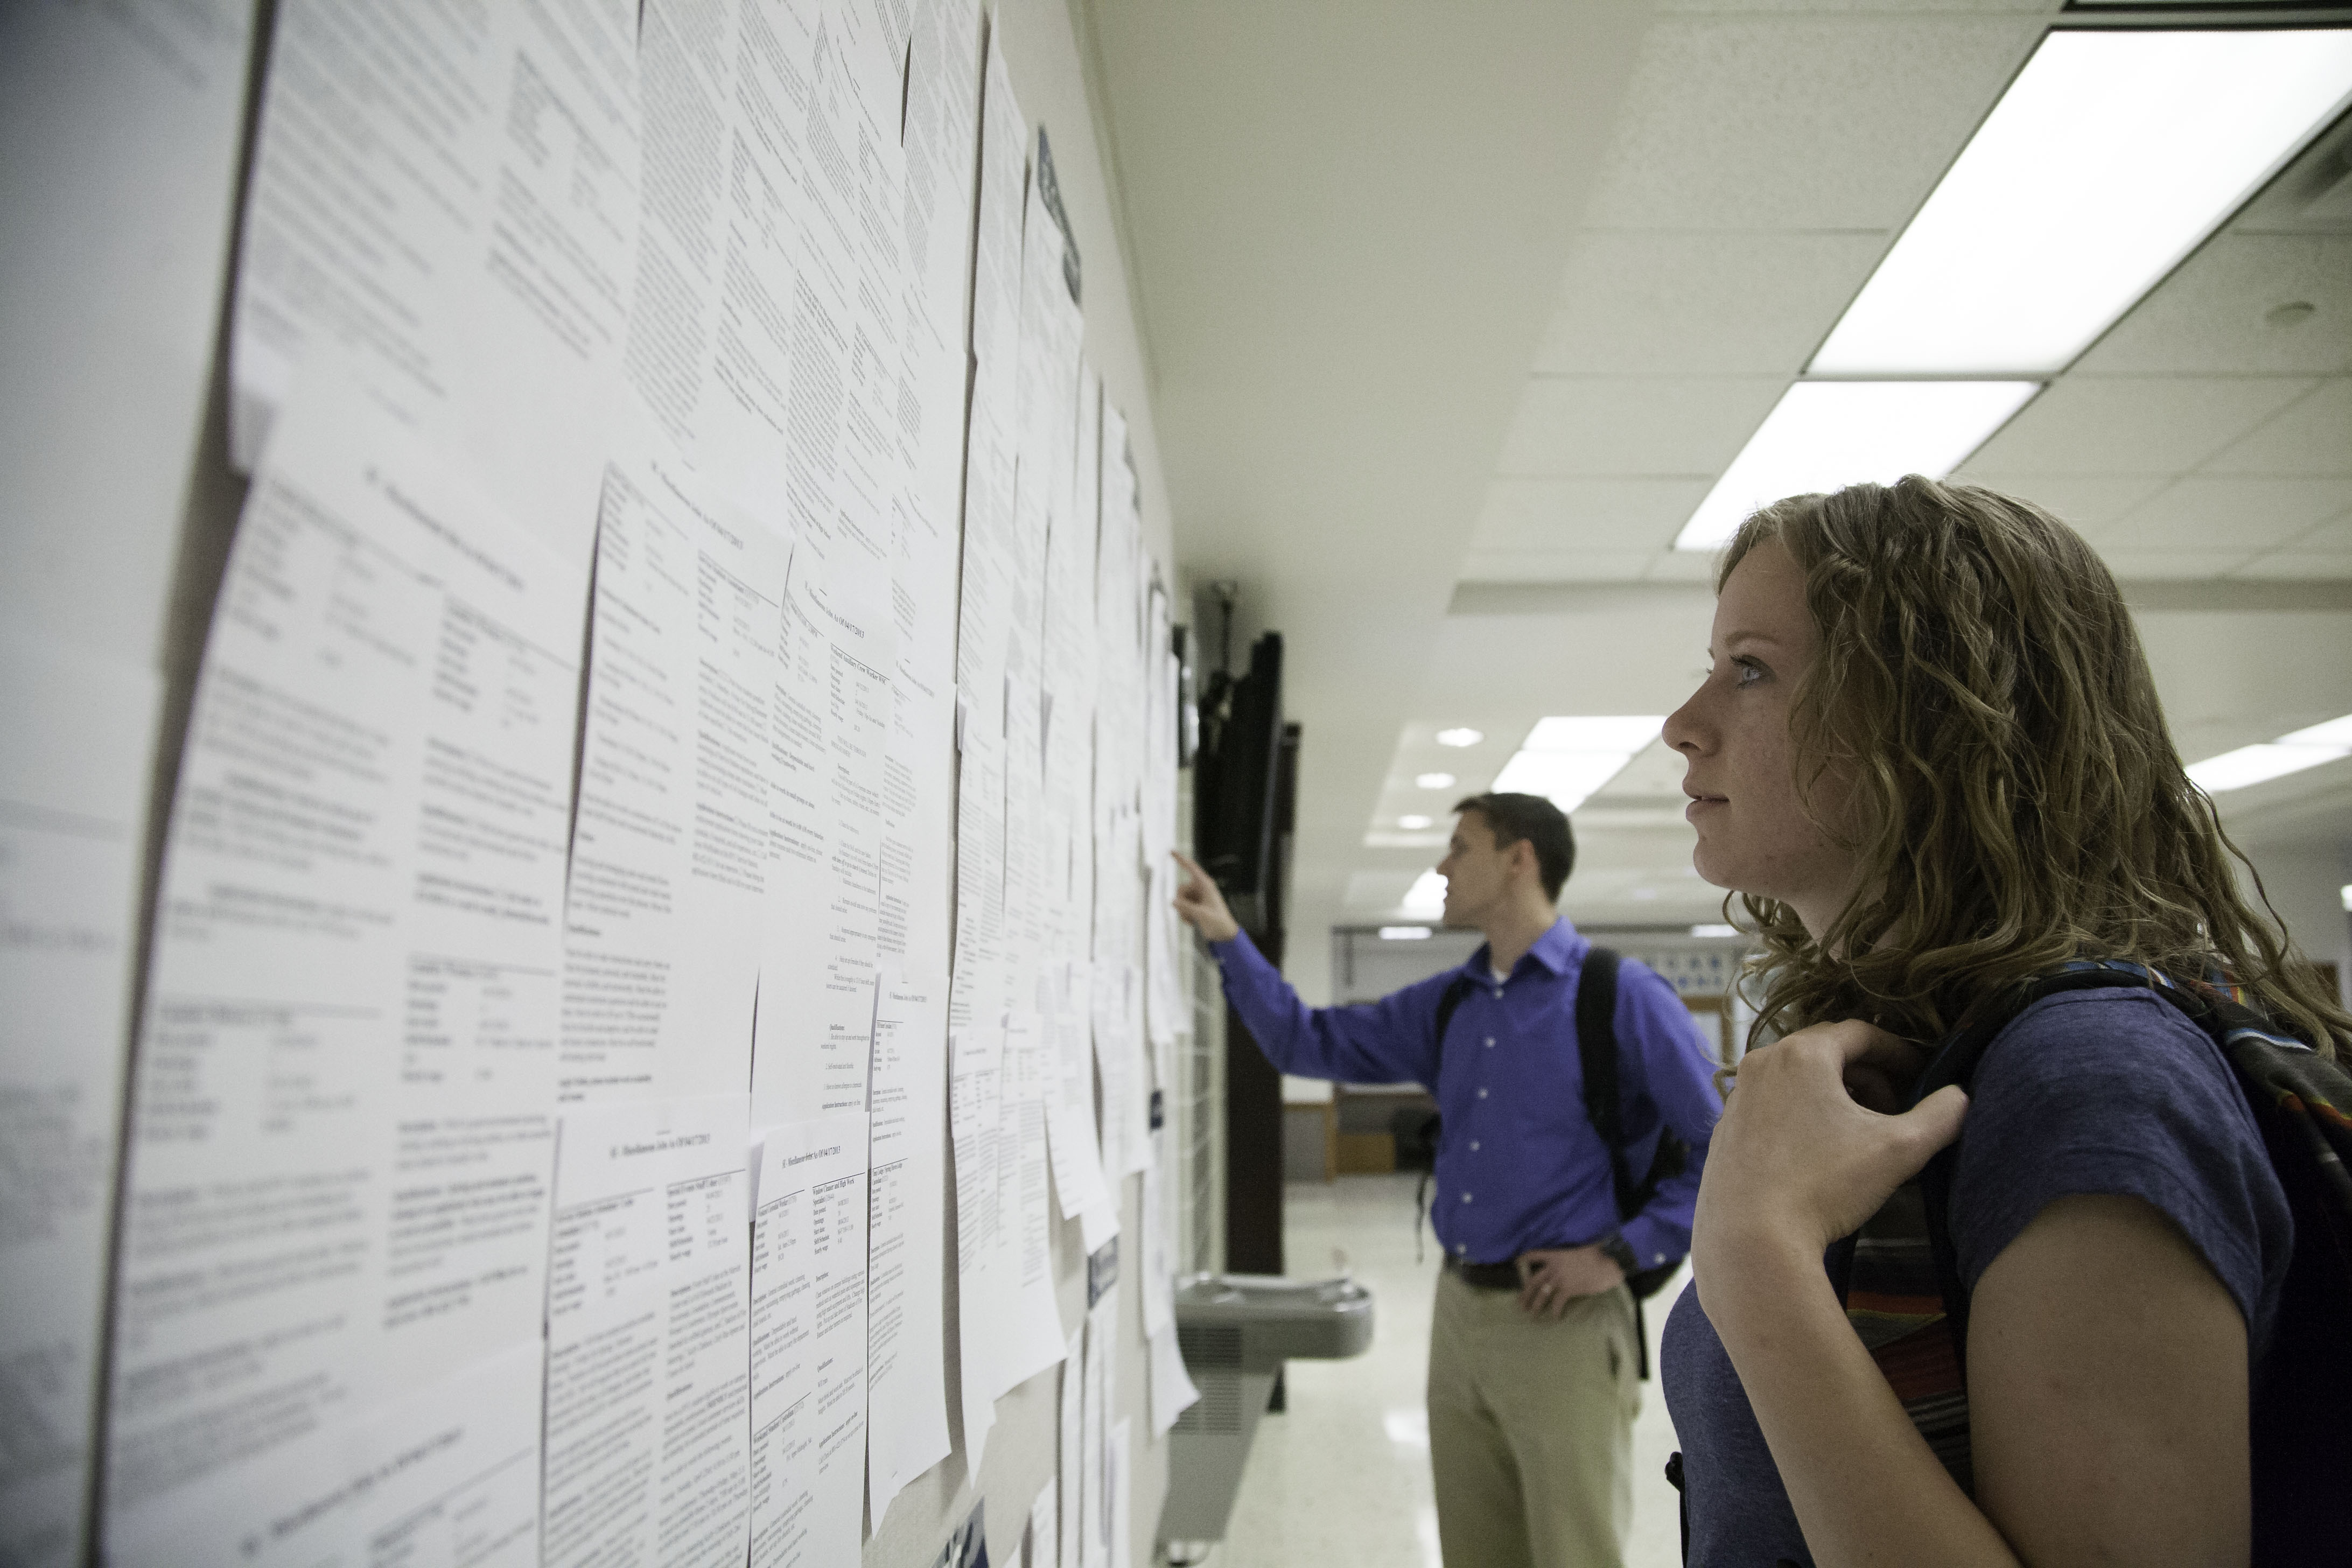 missionary age change linked to unfilled byu campus jobs the byu students ariel jay and jared bruton search the job board photo by elliott